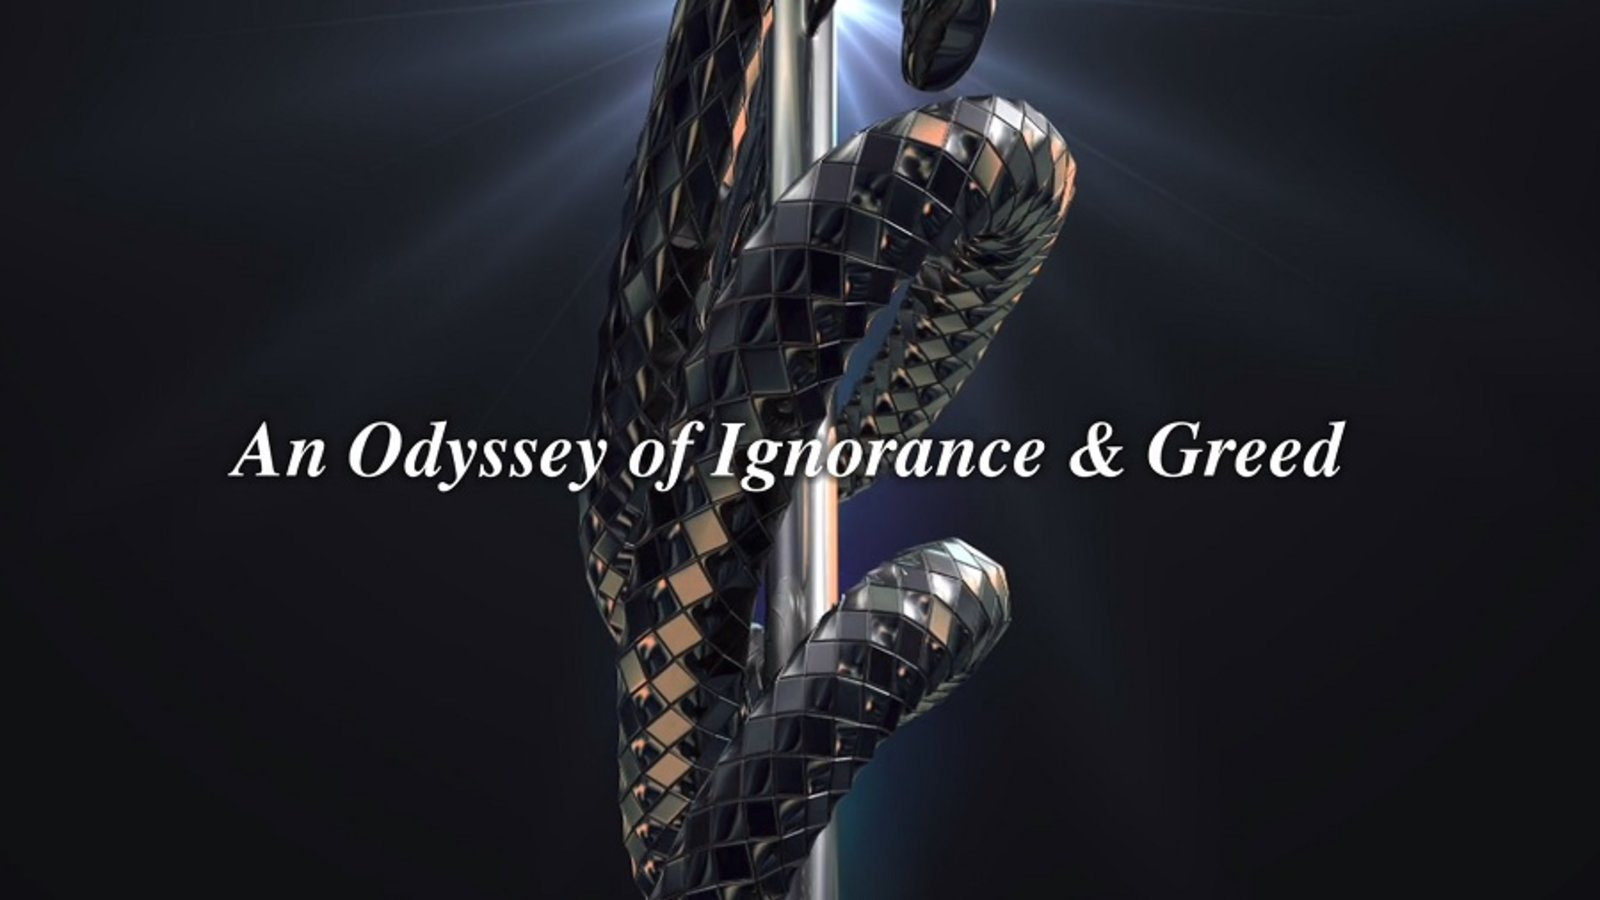 An Odyssey of Ignorance & Greed